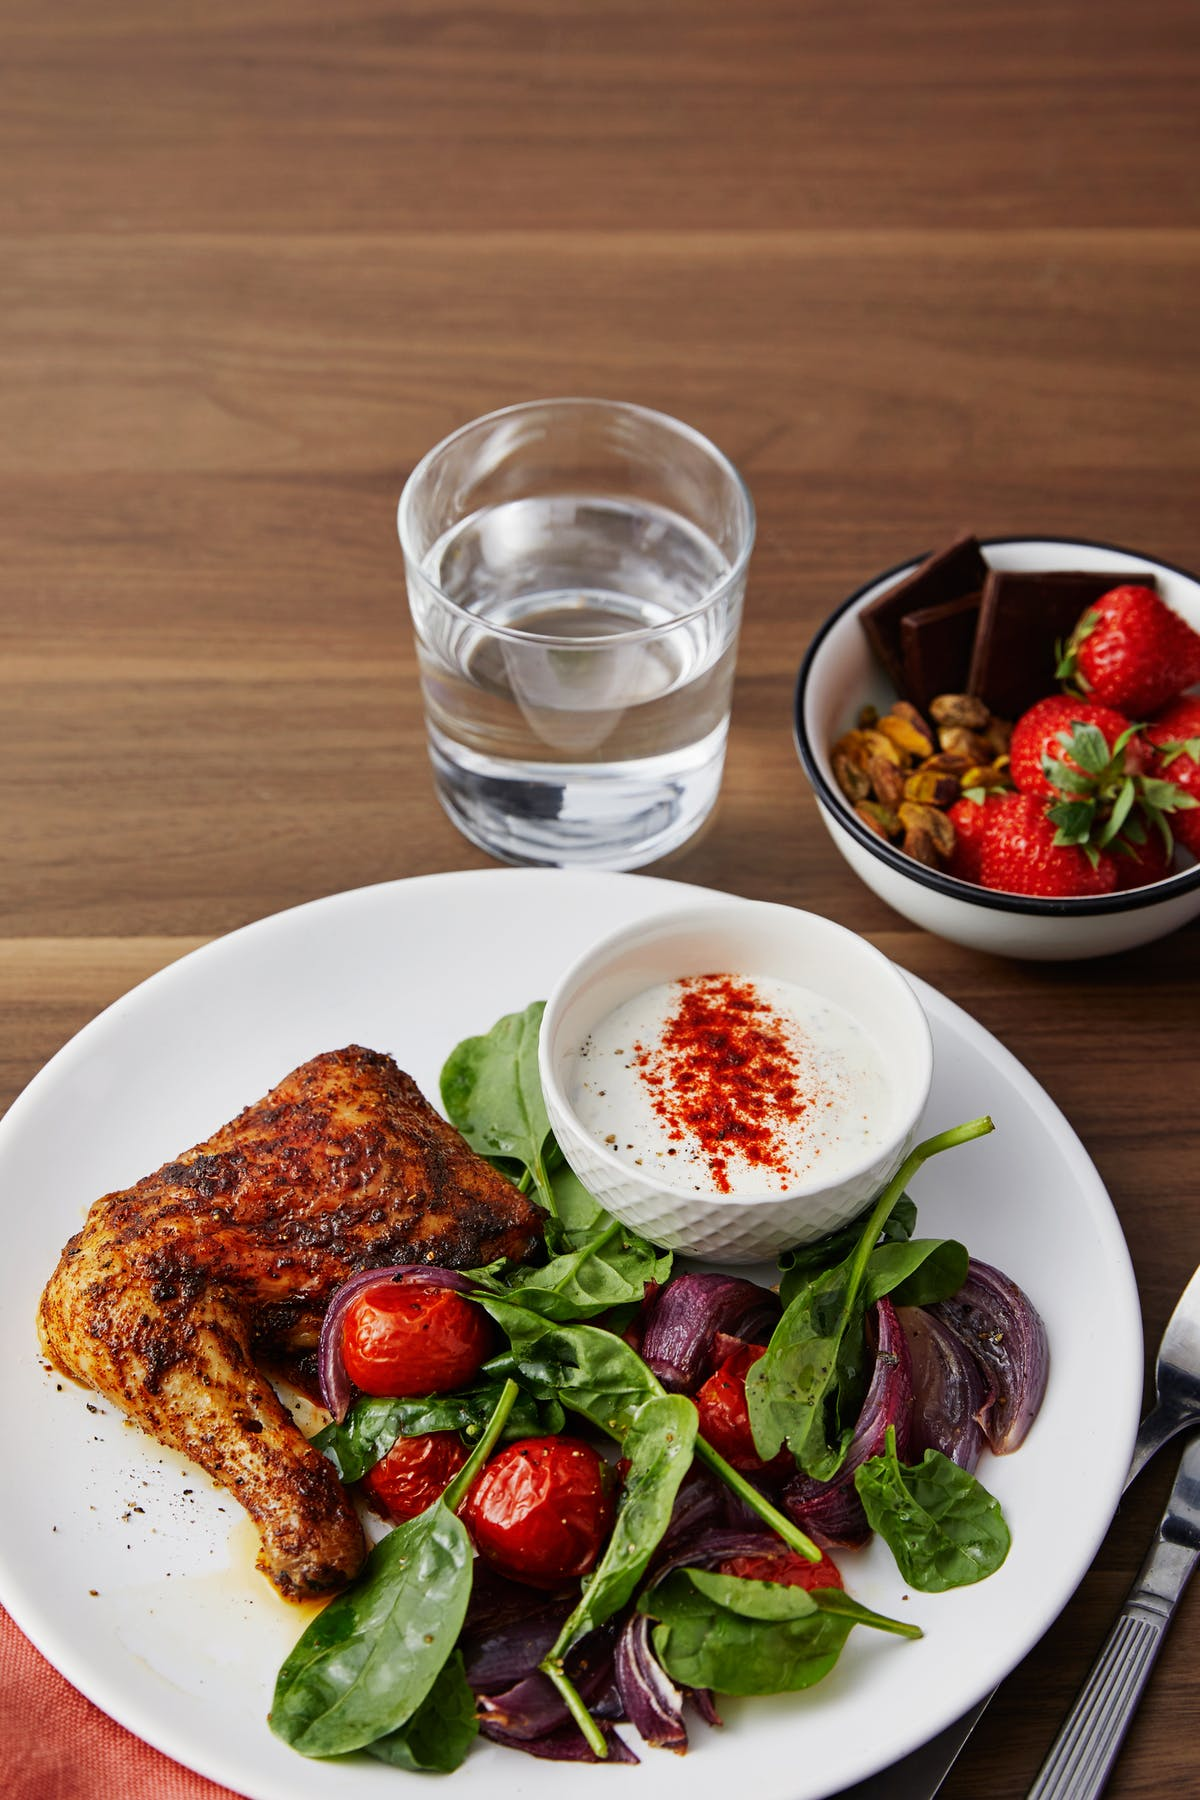 Roasted chicken legs with veggies, paprika sauce and dessert